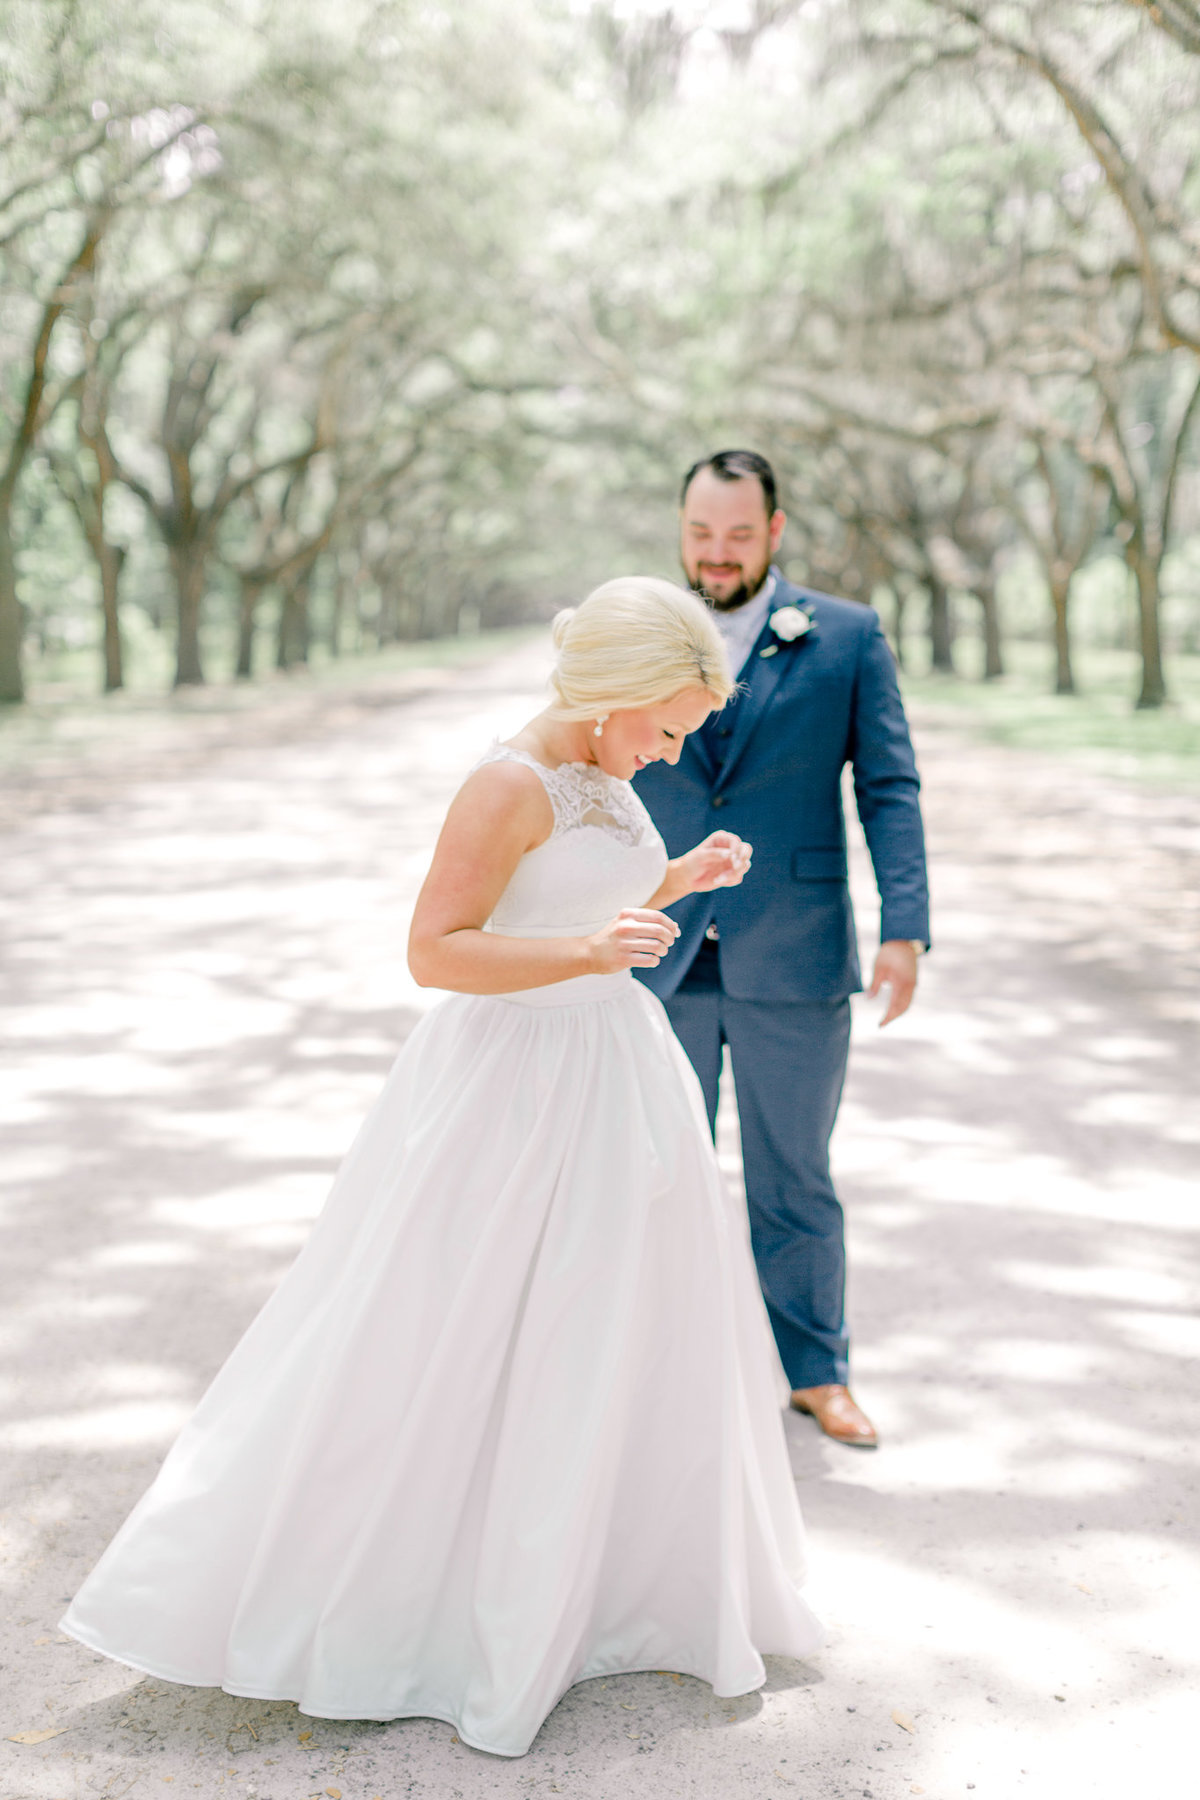 Savannah-Georgia-Wedding-Photographer-Holly-Felts-Photography-Wilmon-Wedding-60